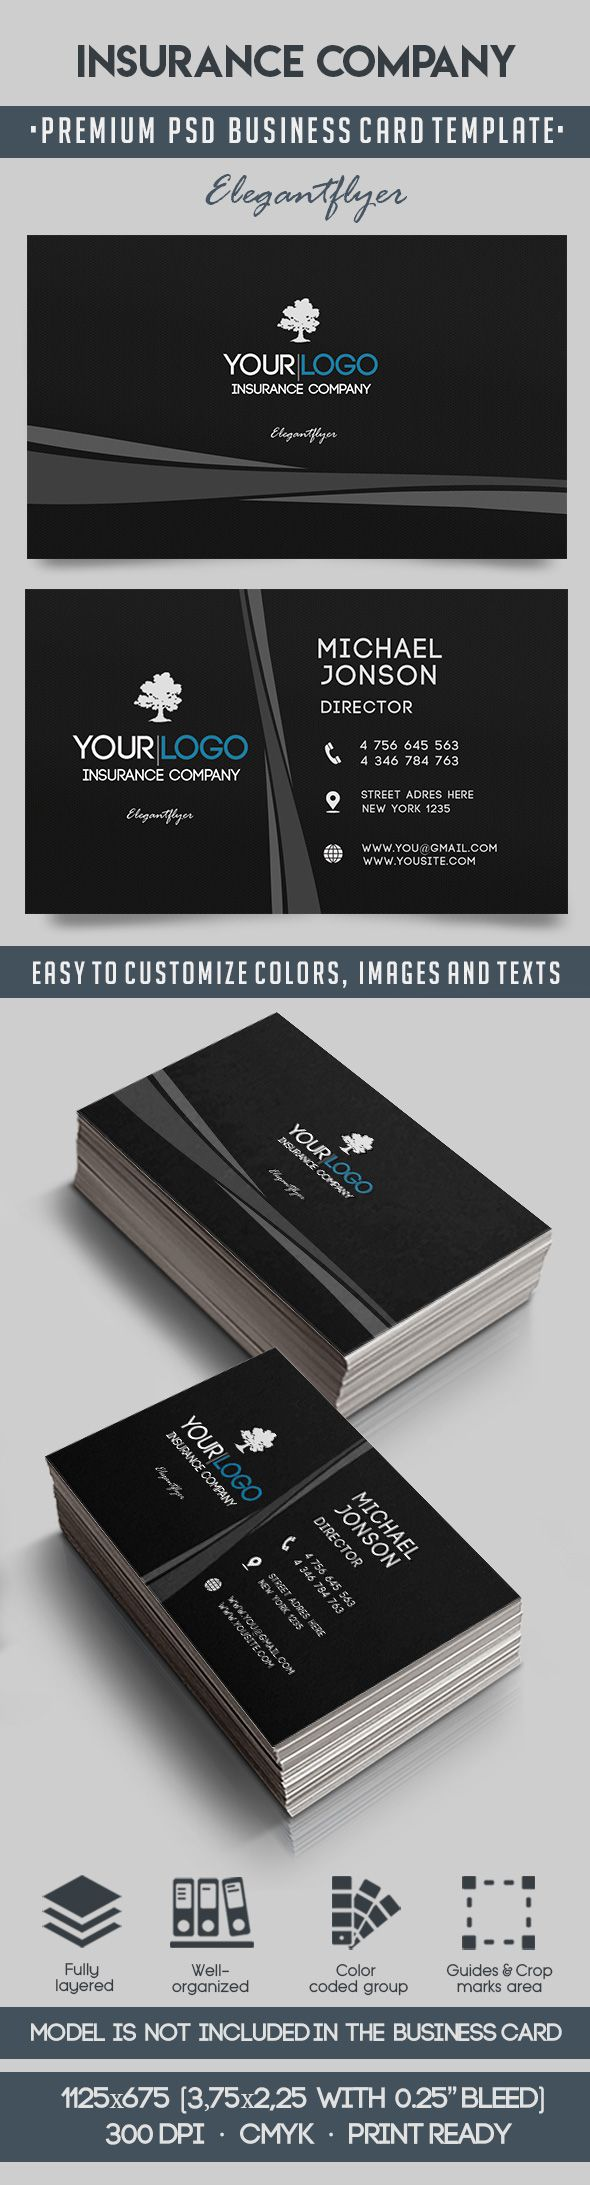 Business Card for Insurance Company